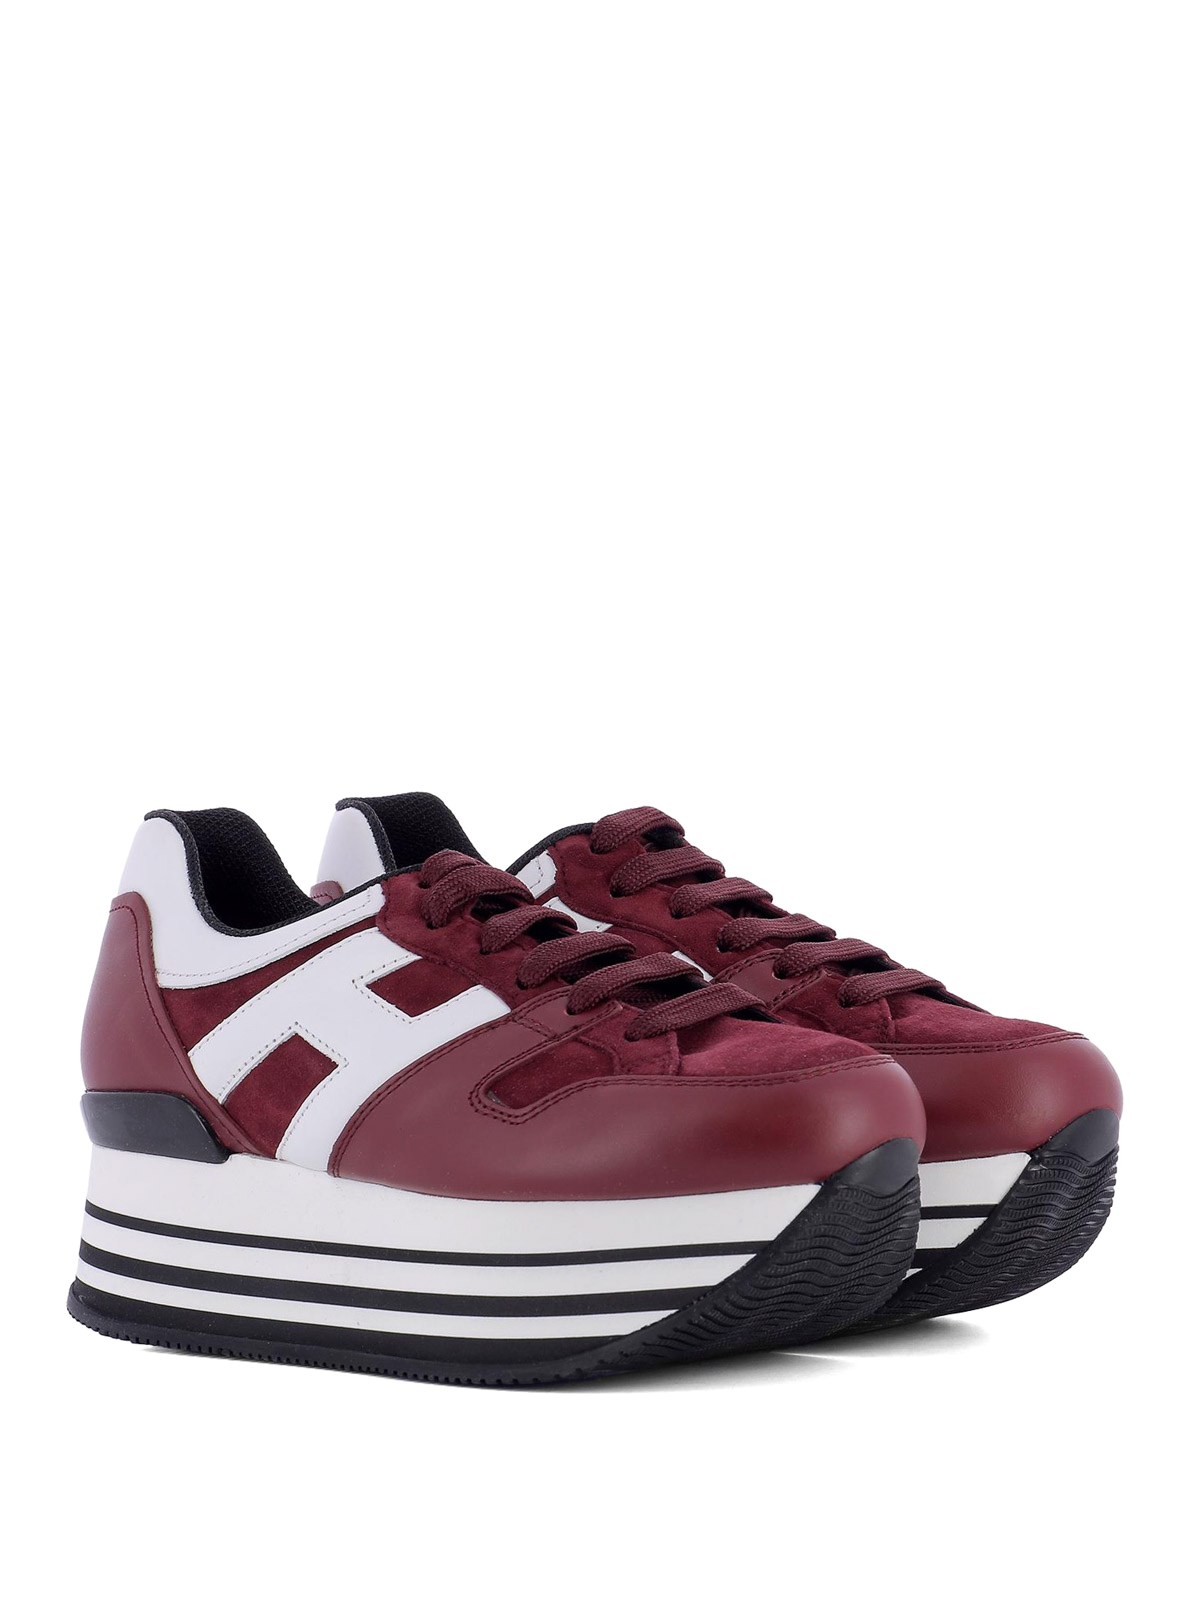 Hogan - Maxi H222 burgundy leather sneakers - trainers ...